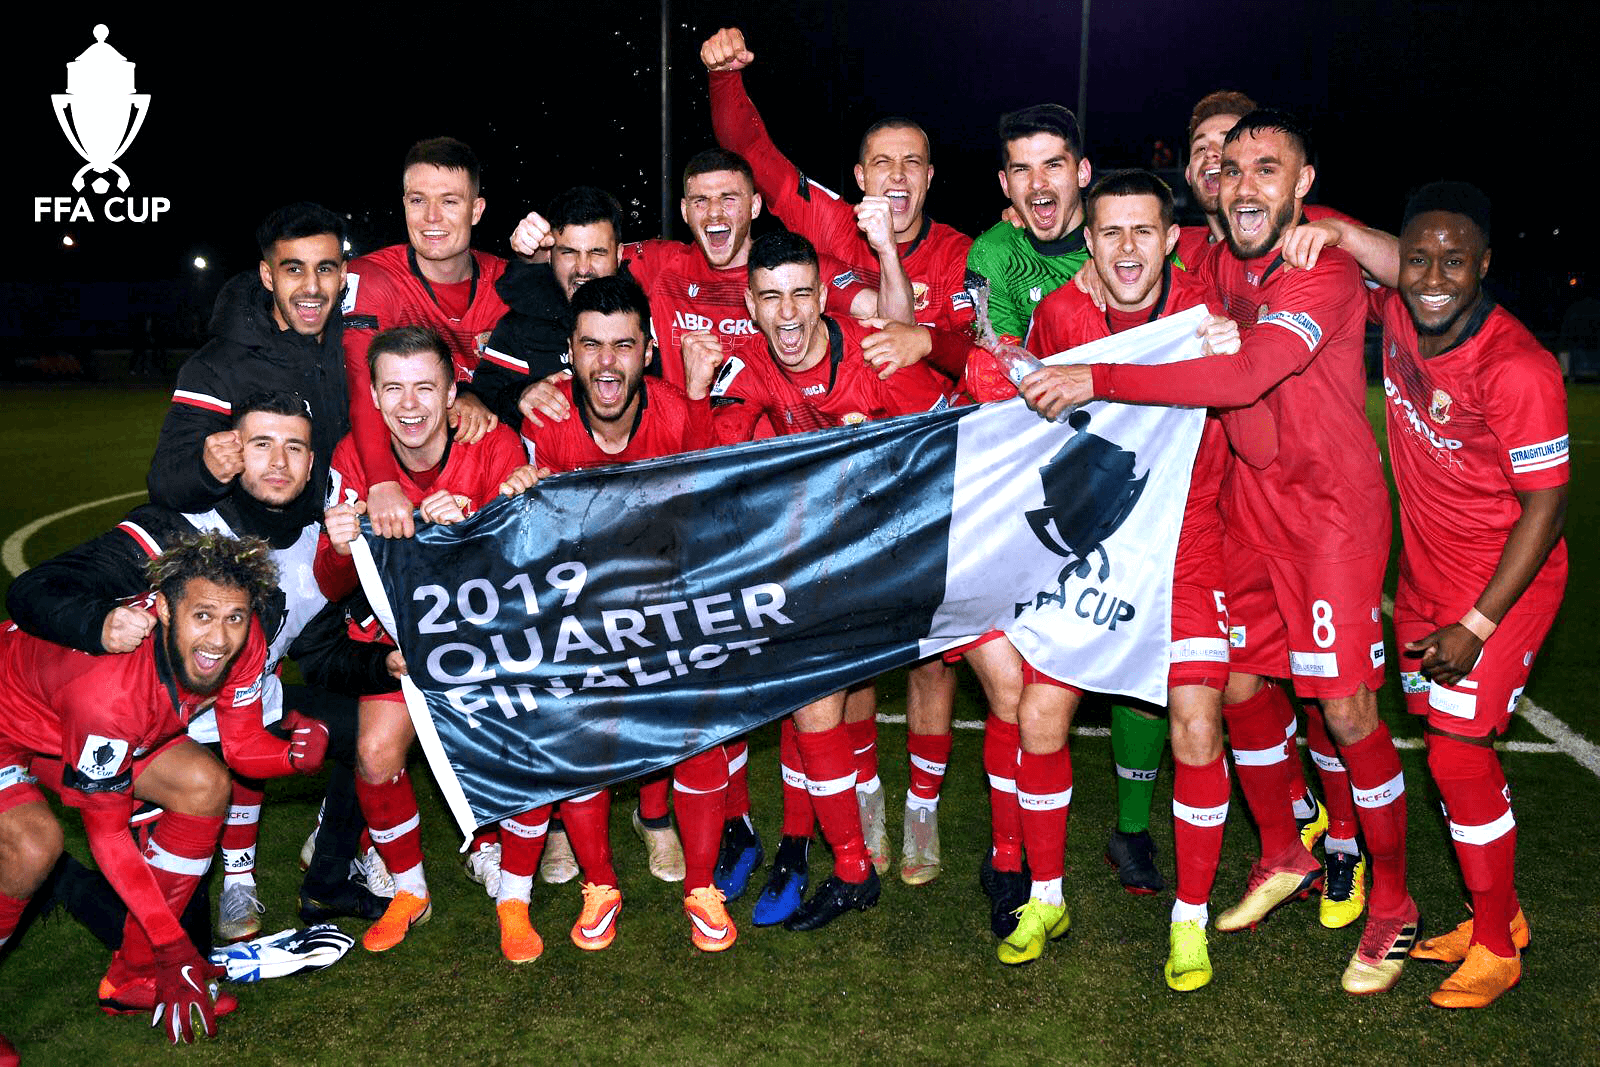 FFA Cup Round of 16 Review: Hat-trick hero Marko Delic sends Hume City into final 8 of the FFA Cup